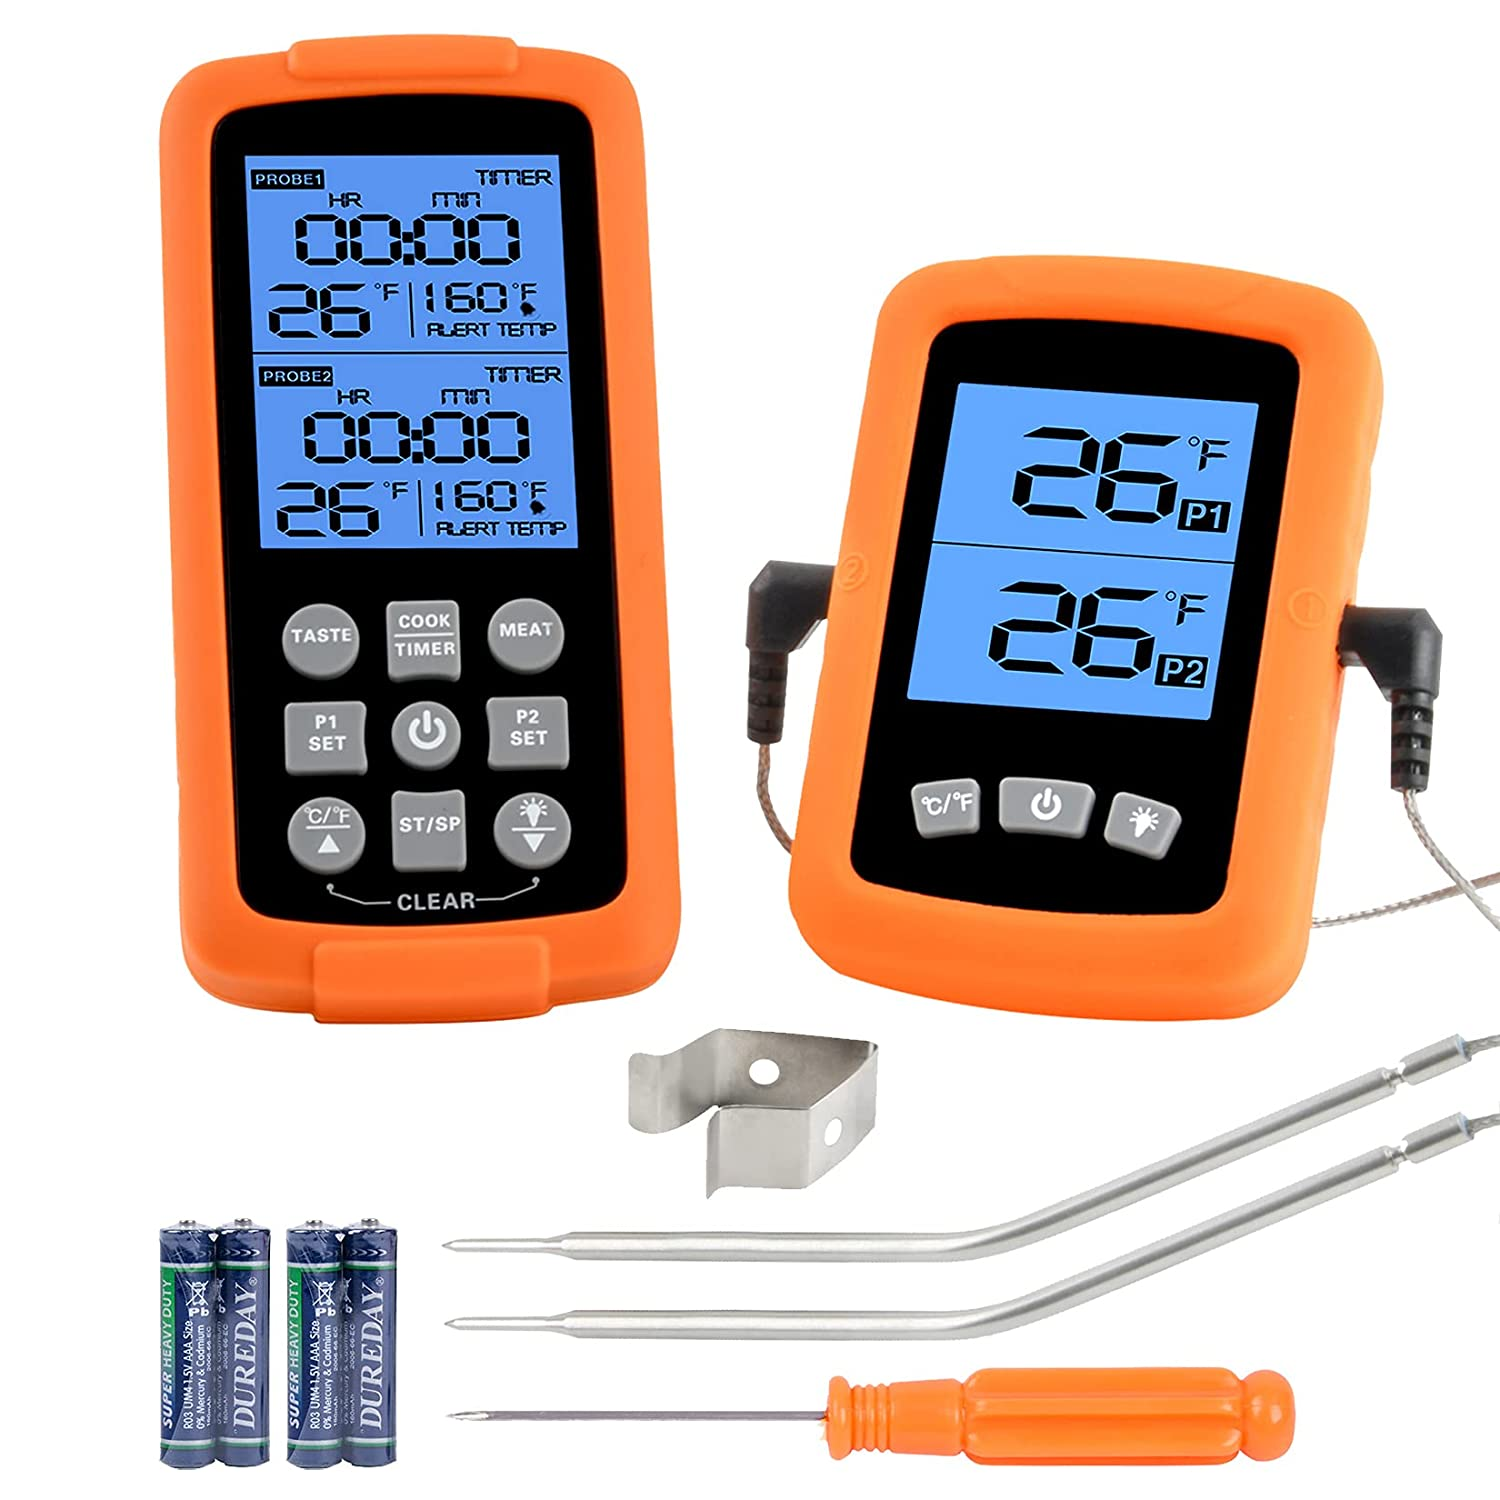 GGC Wireless Remote Digital Cooking Food Meat Thermometer with Dual Probe for Smoker Grill BBQ Thermometer